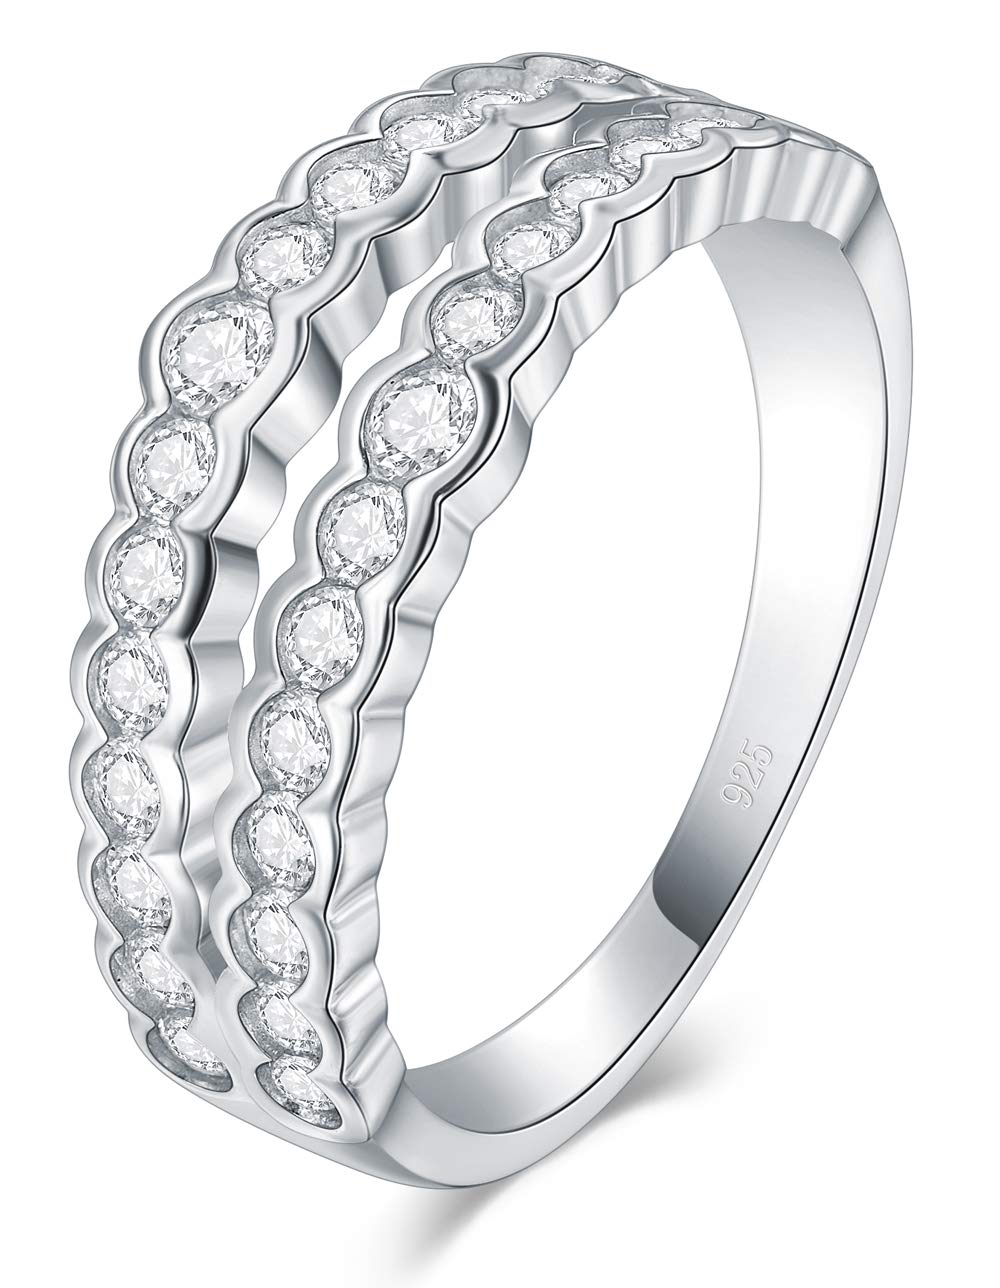 CloseoutWarehouse Simulated Ruby Cubic Zirconia Stackable Eternity Ring Sterling Silver Size 11